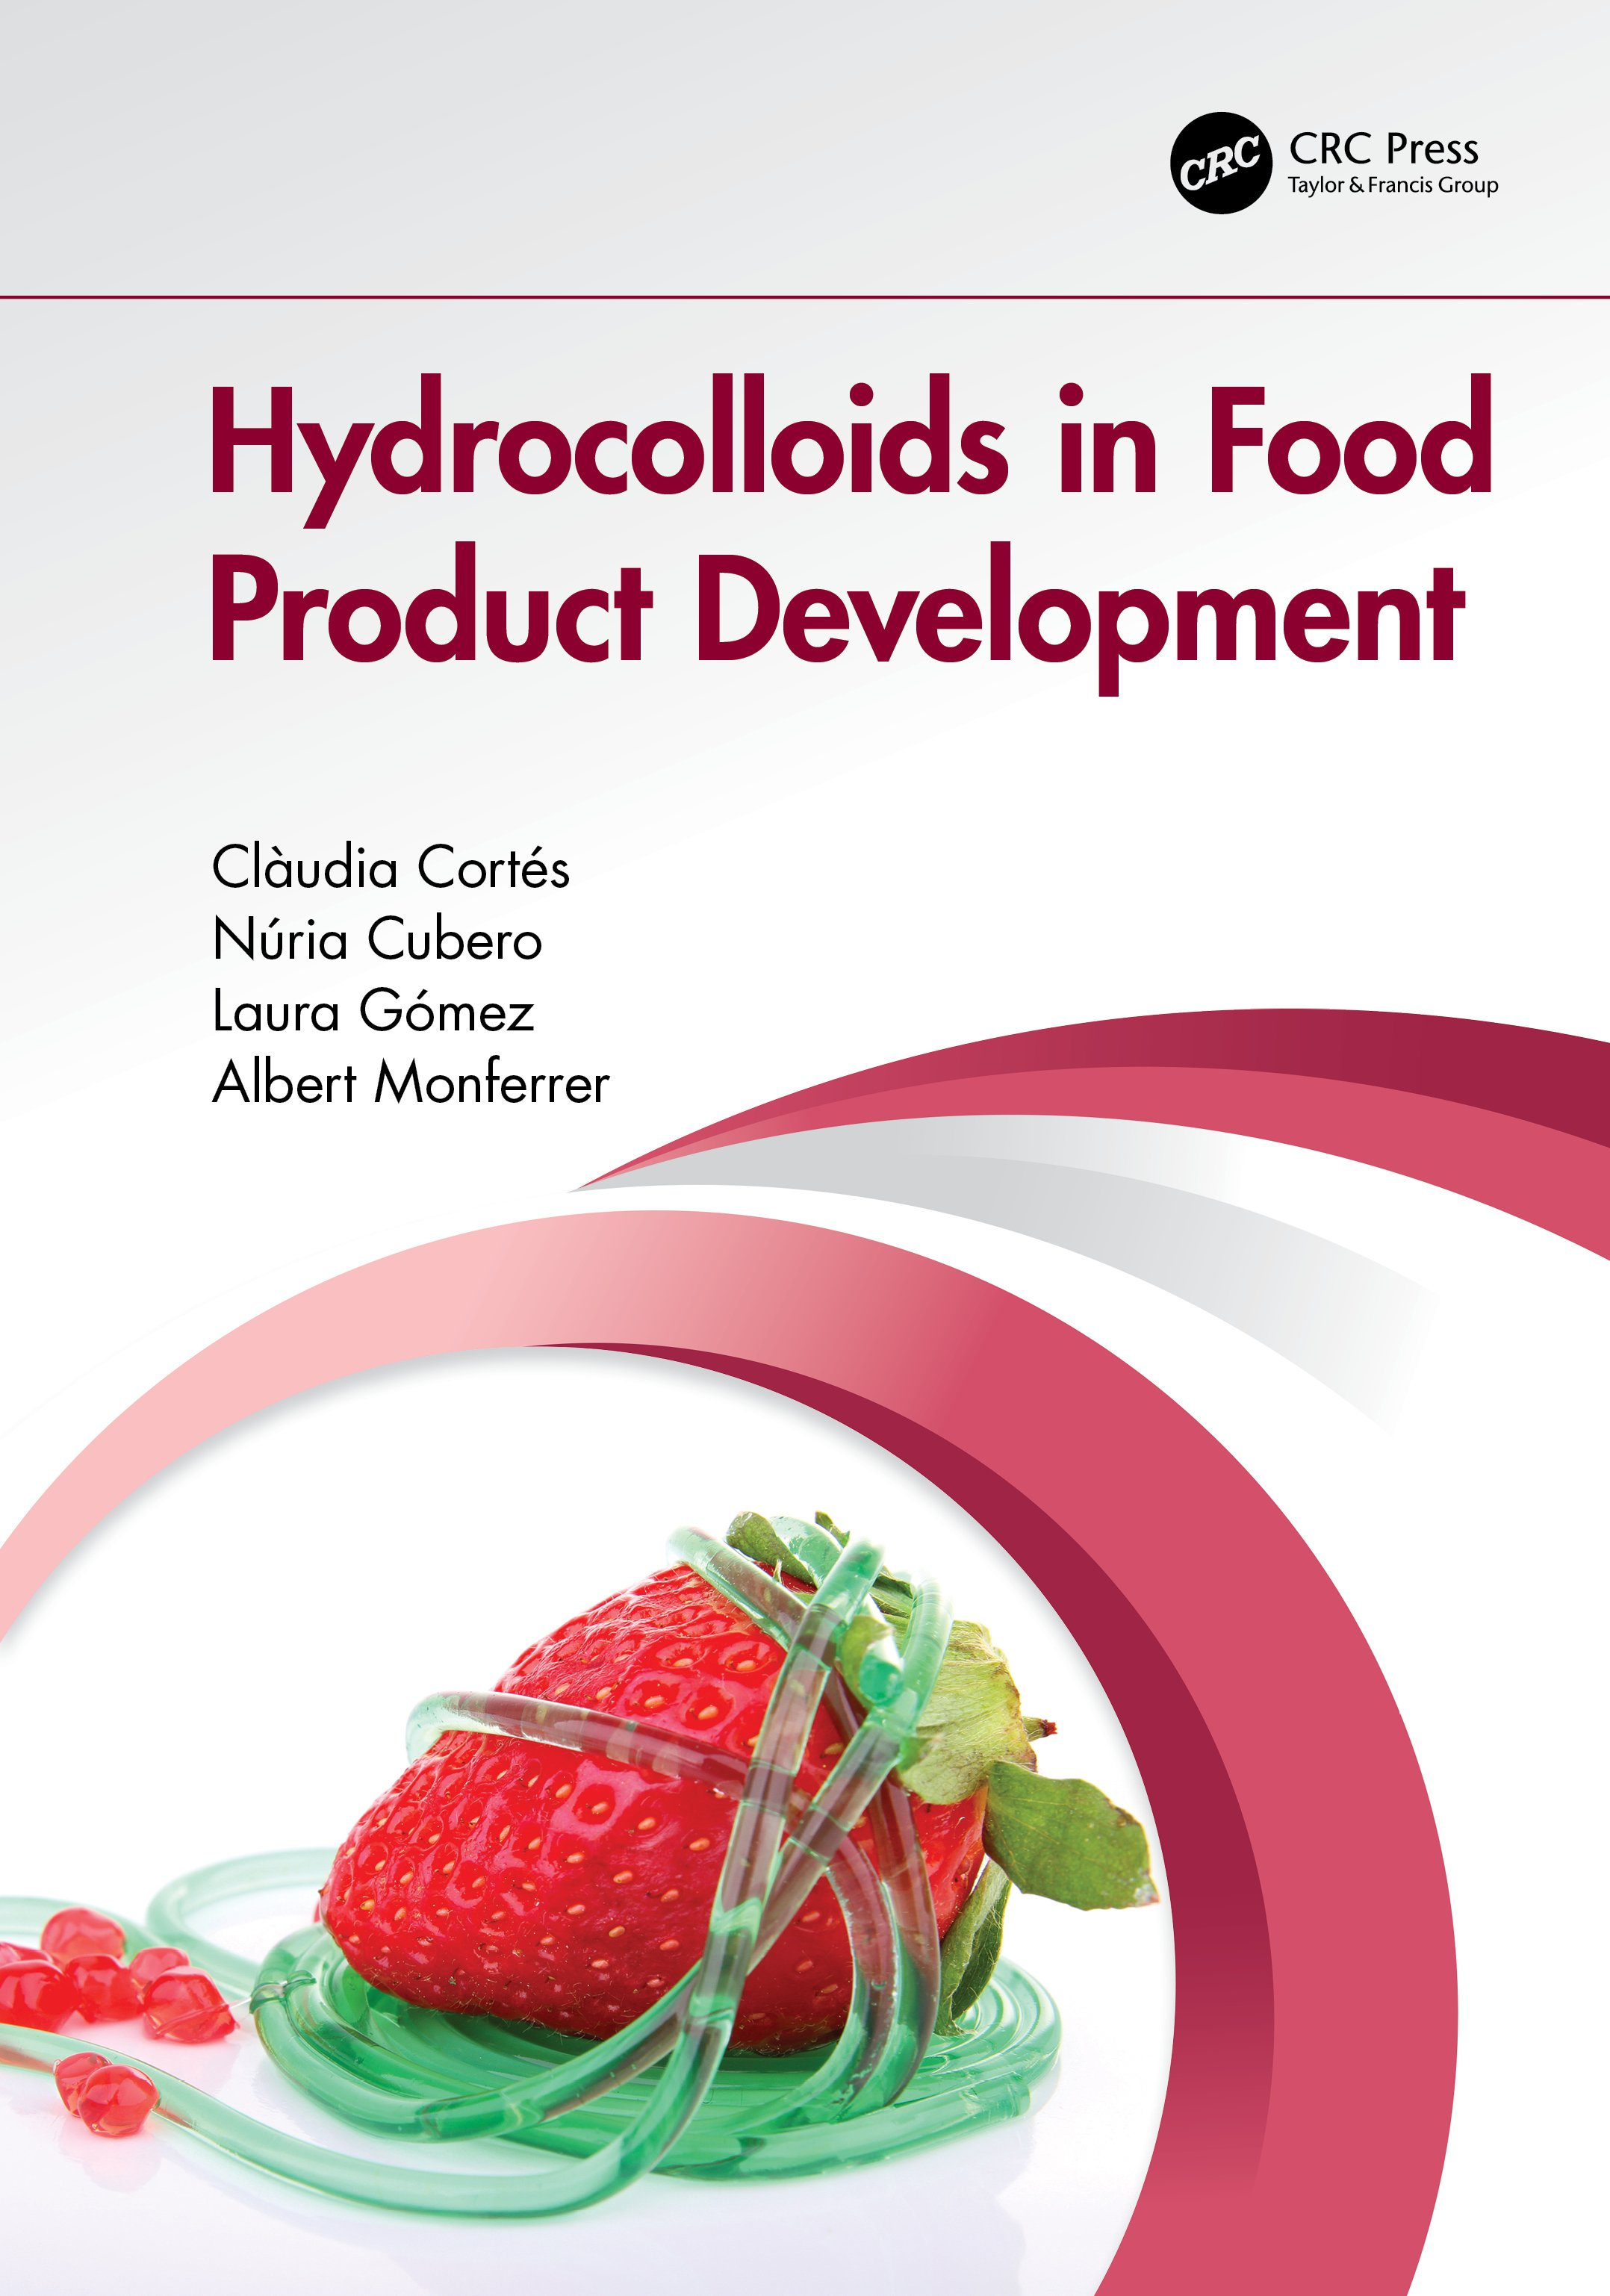 Hydrocolloids in food product development